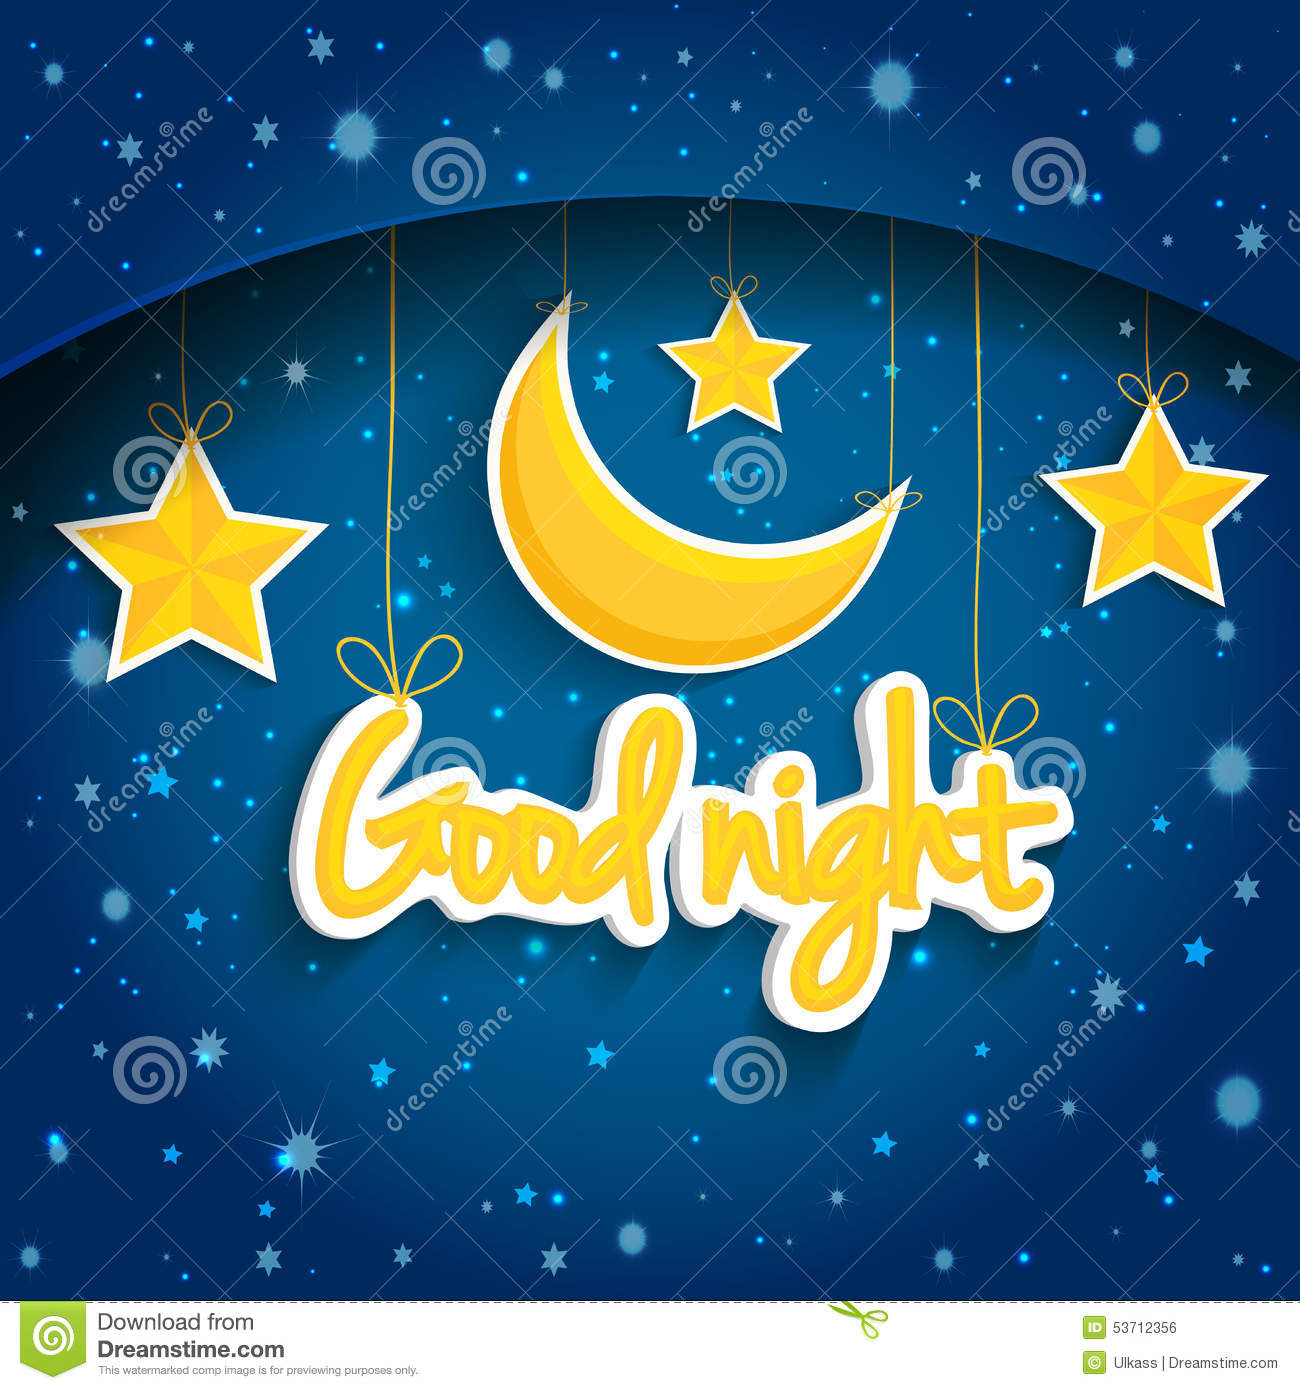 Che Quotes Wallpaper Cartoon Star And Moon Wishing Good Night Vector